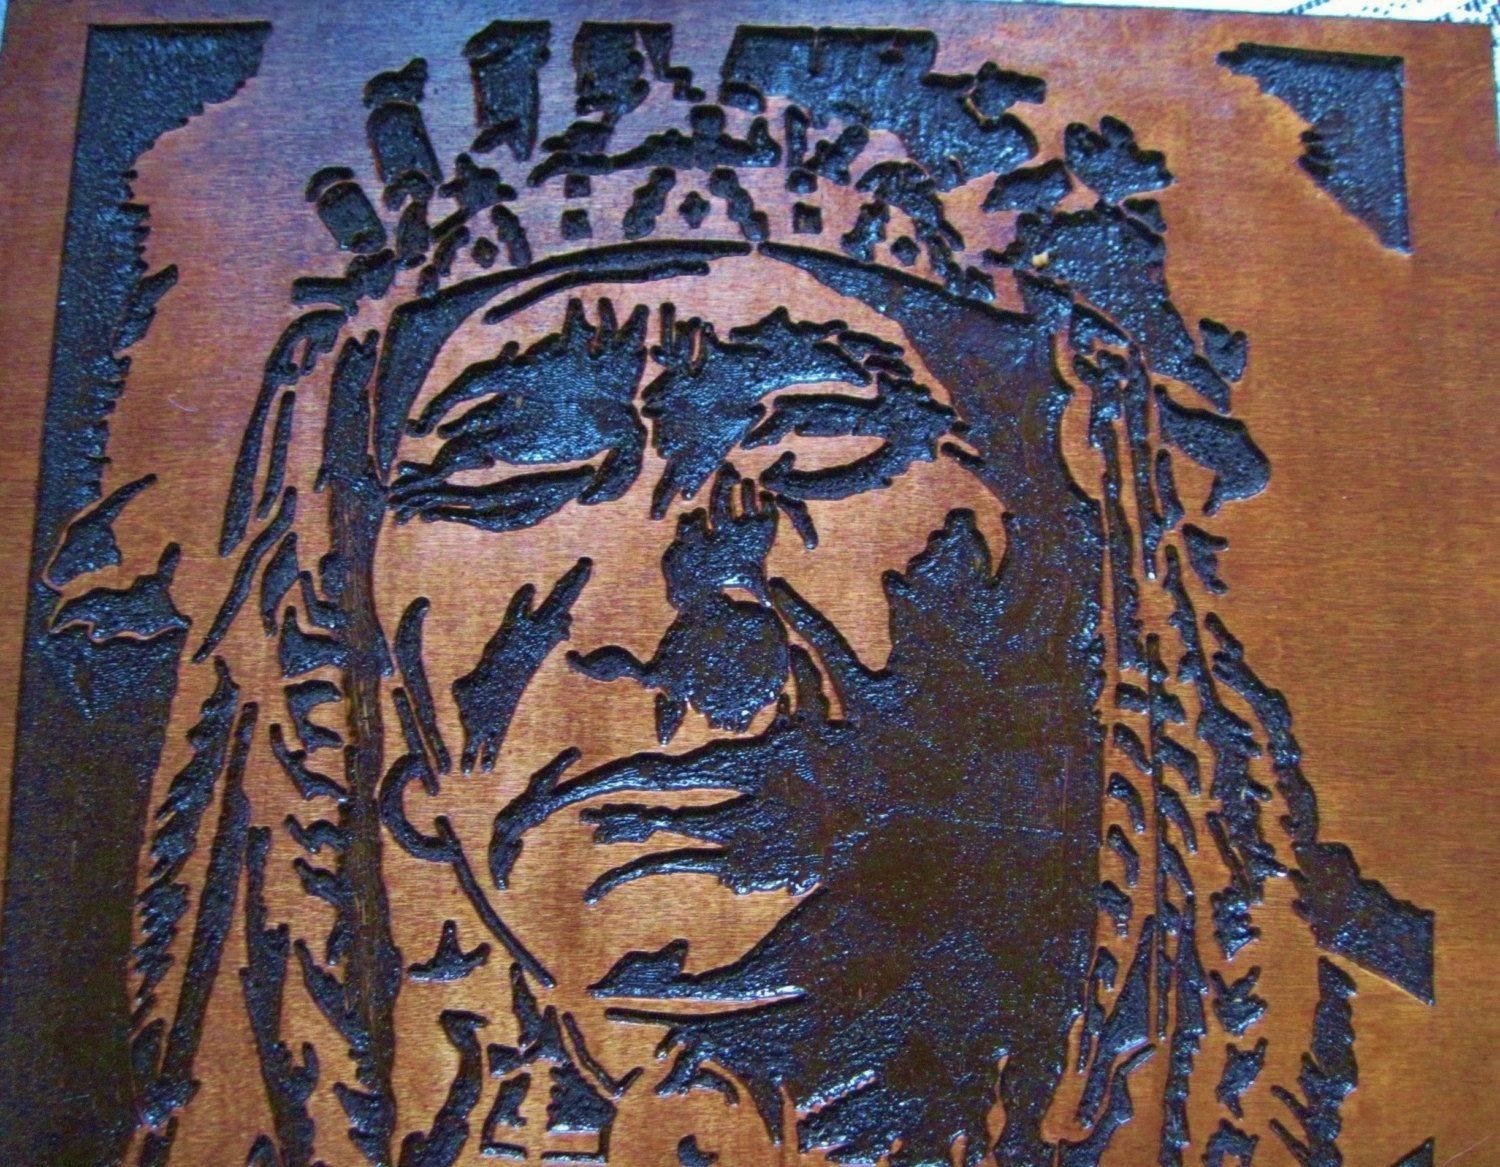 Custom Made Native American Indian Chief Handmade Wood Carving Regarding Most Current Native American Wall Art (View 12 of 25)